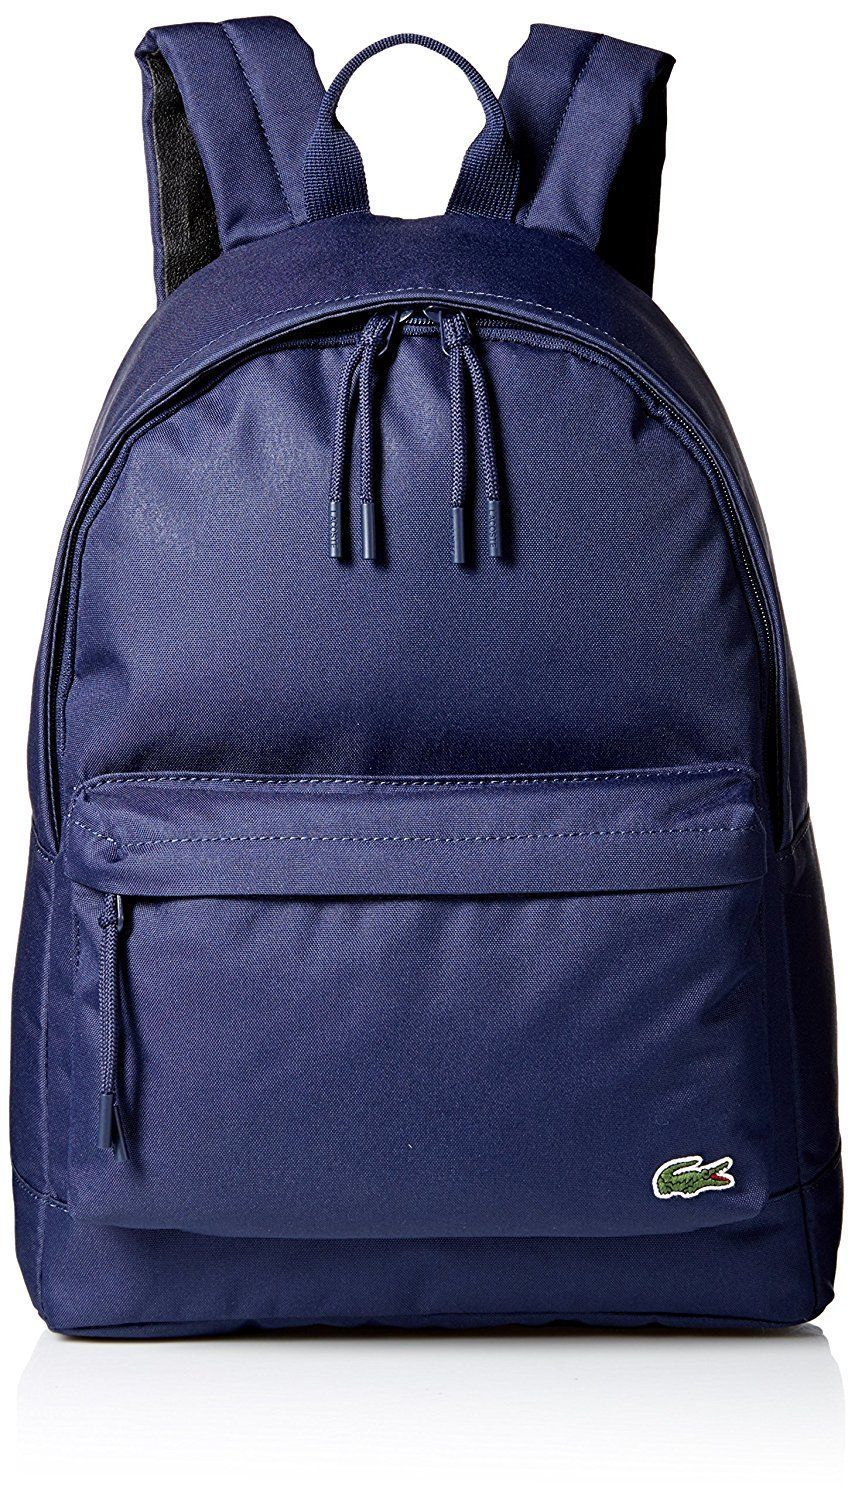 Lacoste Men's Neocroc Backpack Navy Blue